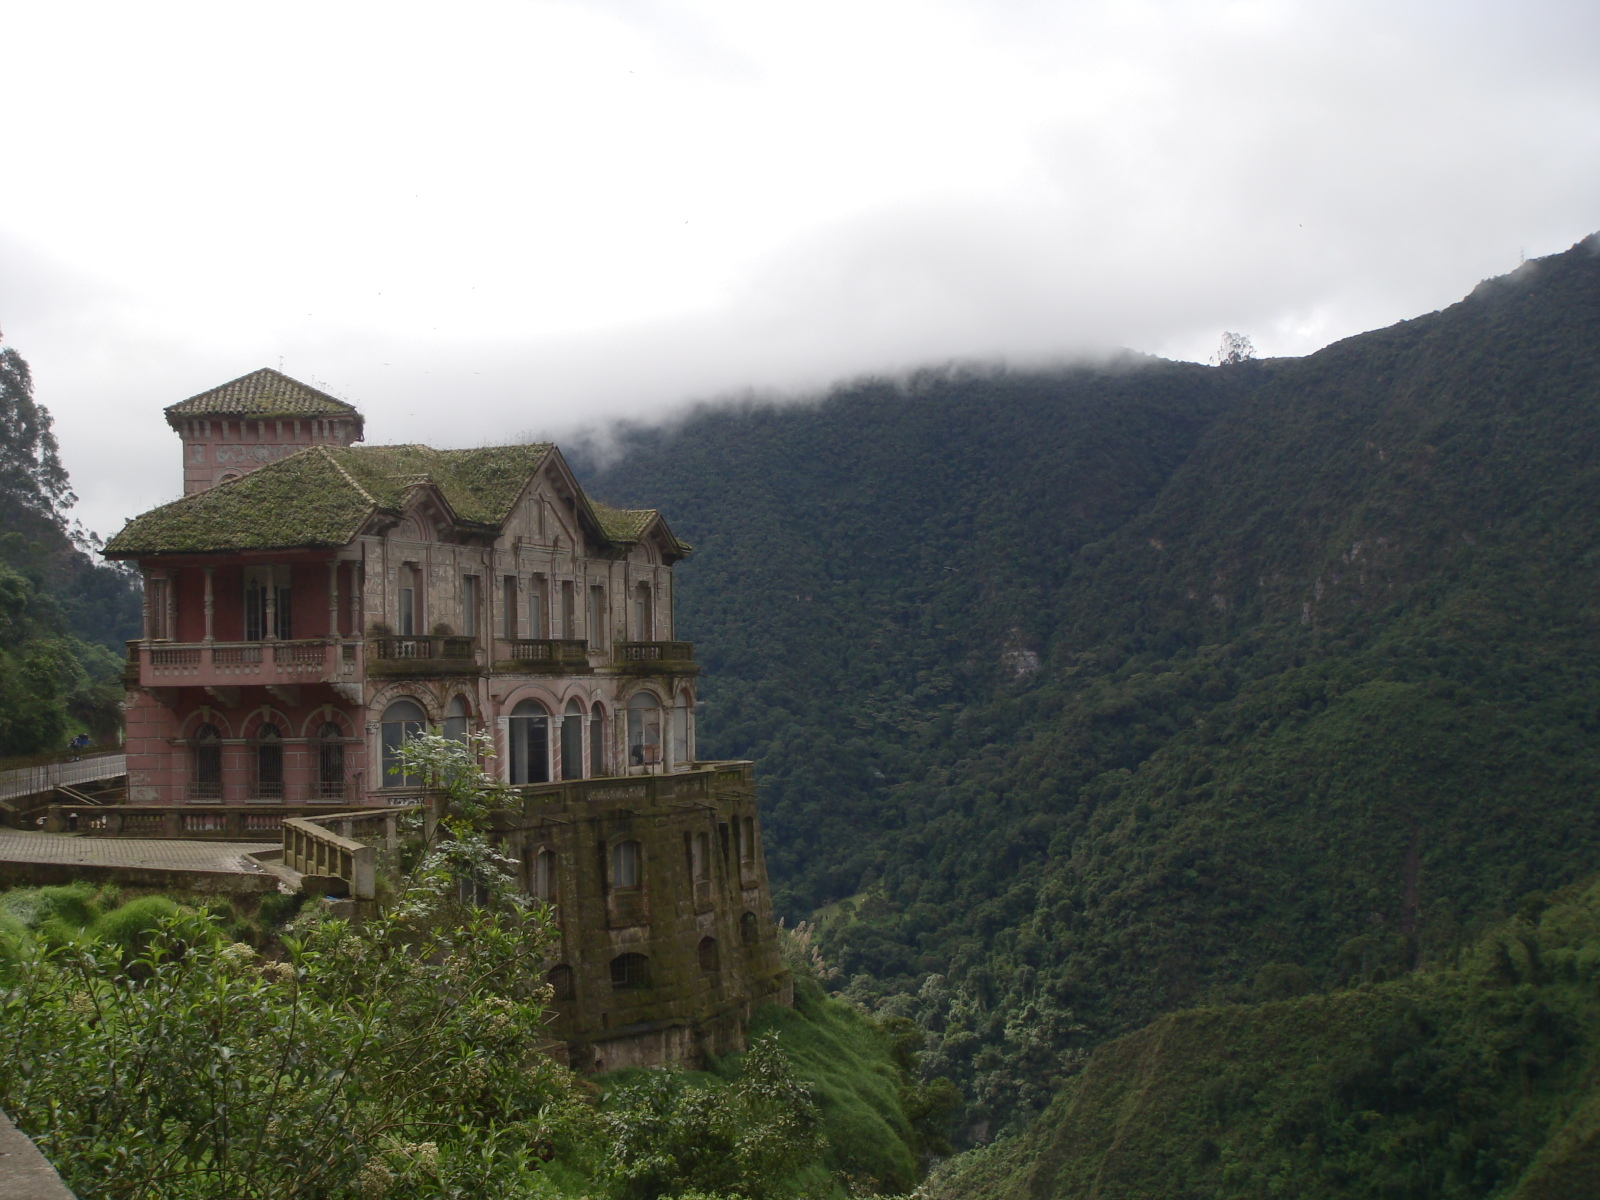 Deserted Places The Haunted Hotel At Tequendama Falls